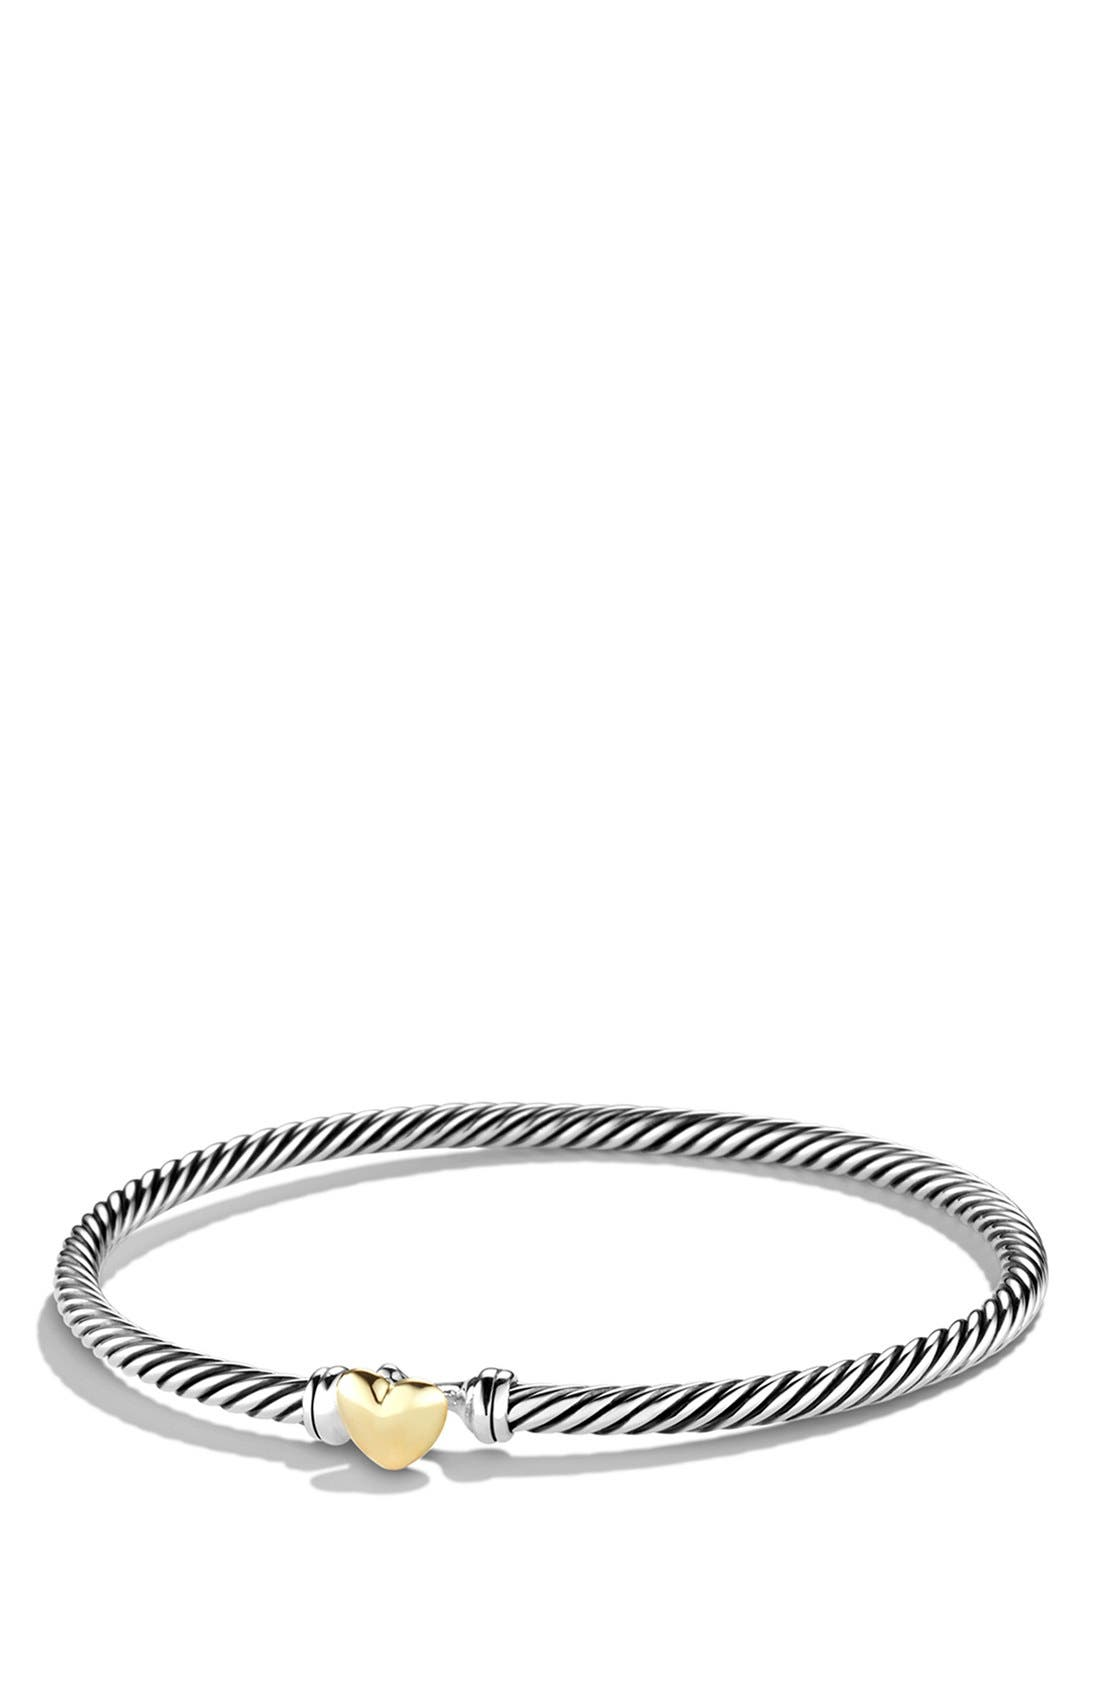 Cable Collectibles Heart Bracelet with 18K Gold,                         Main,                         color, TWO TONE